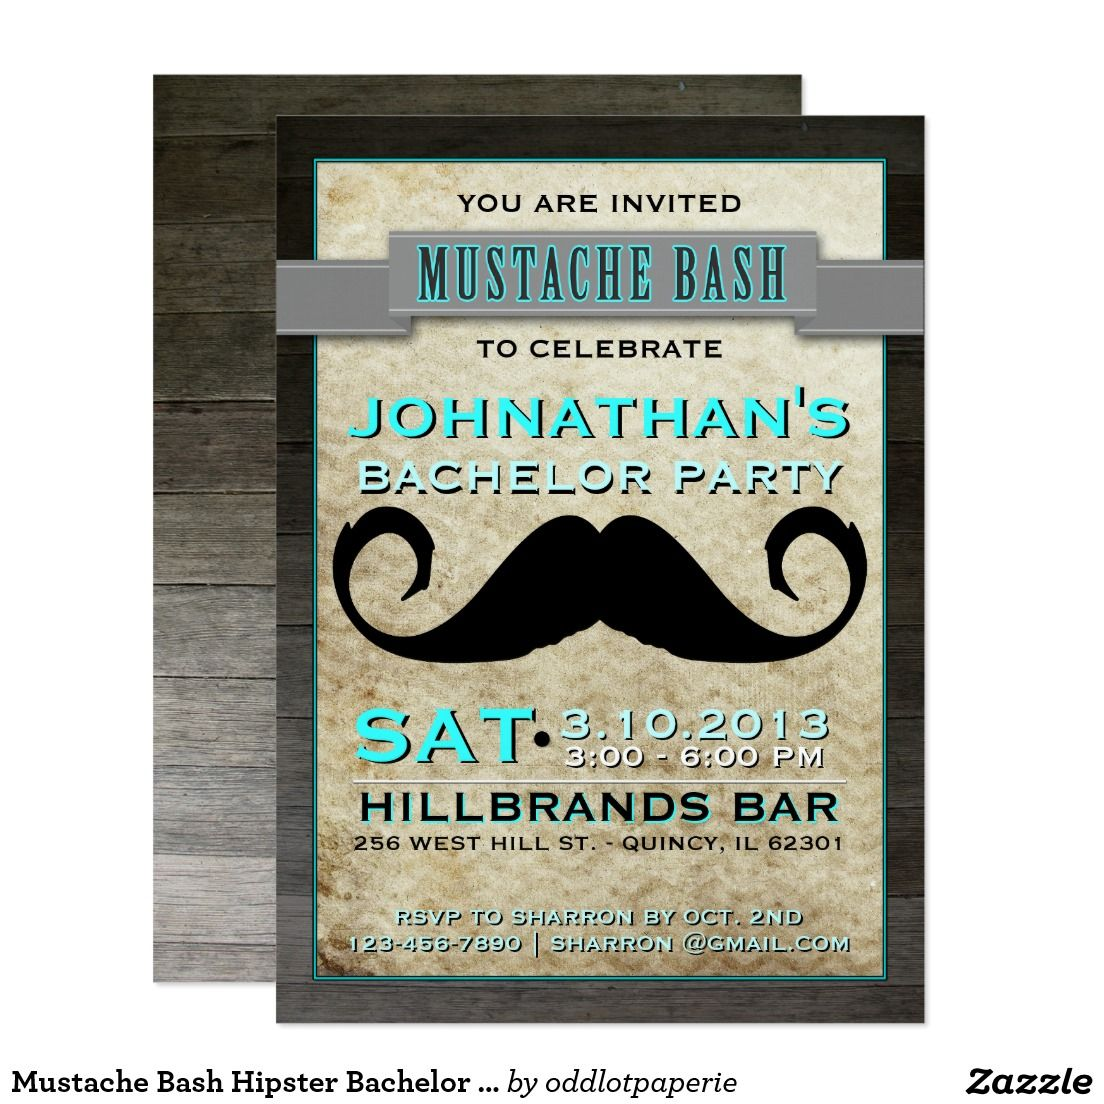 Mustache Bash Hipster Bachelor Party Invitation | Bachelor Party ...